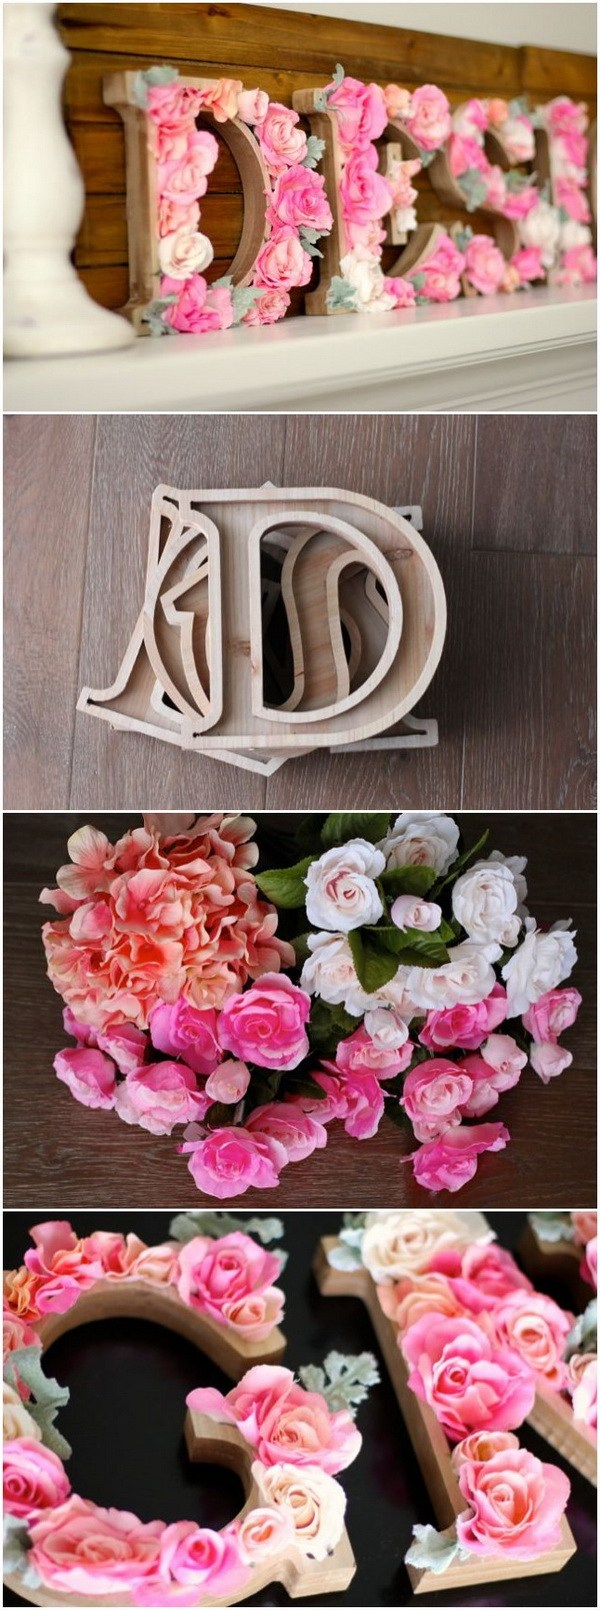 40+ Rustic Wall Decorations For Adding Warmth To Your Home for Floral Wreath Wood Framed Wall Decor (Image 7 of 30)